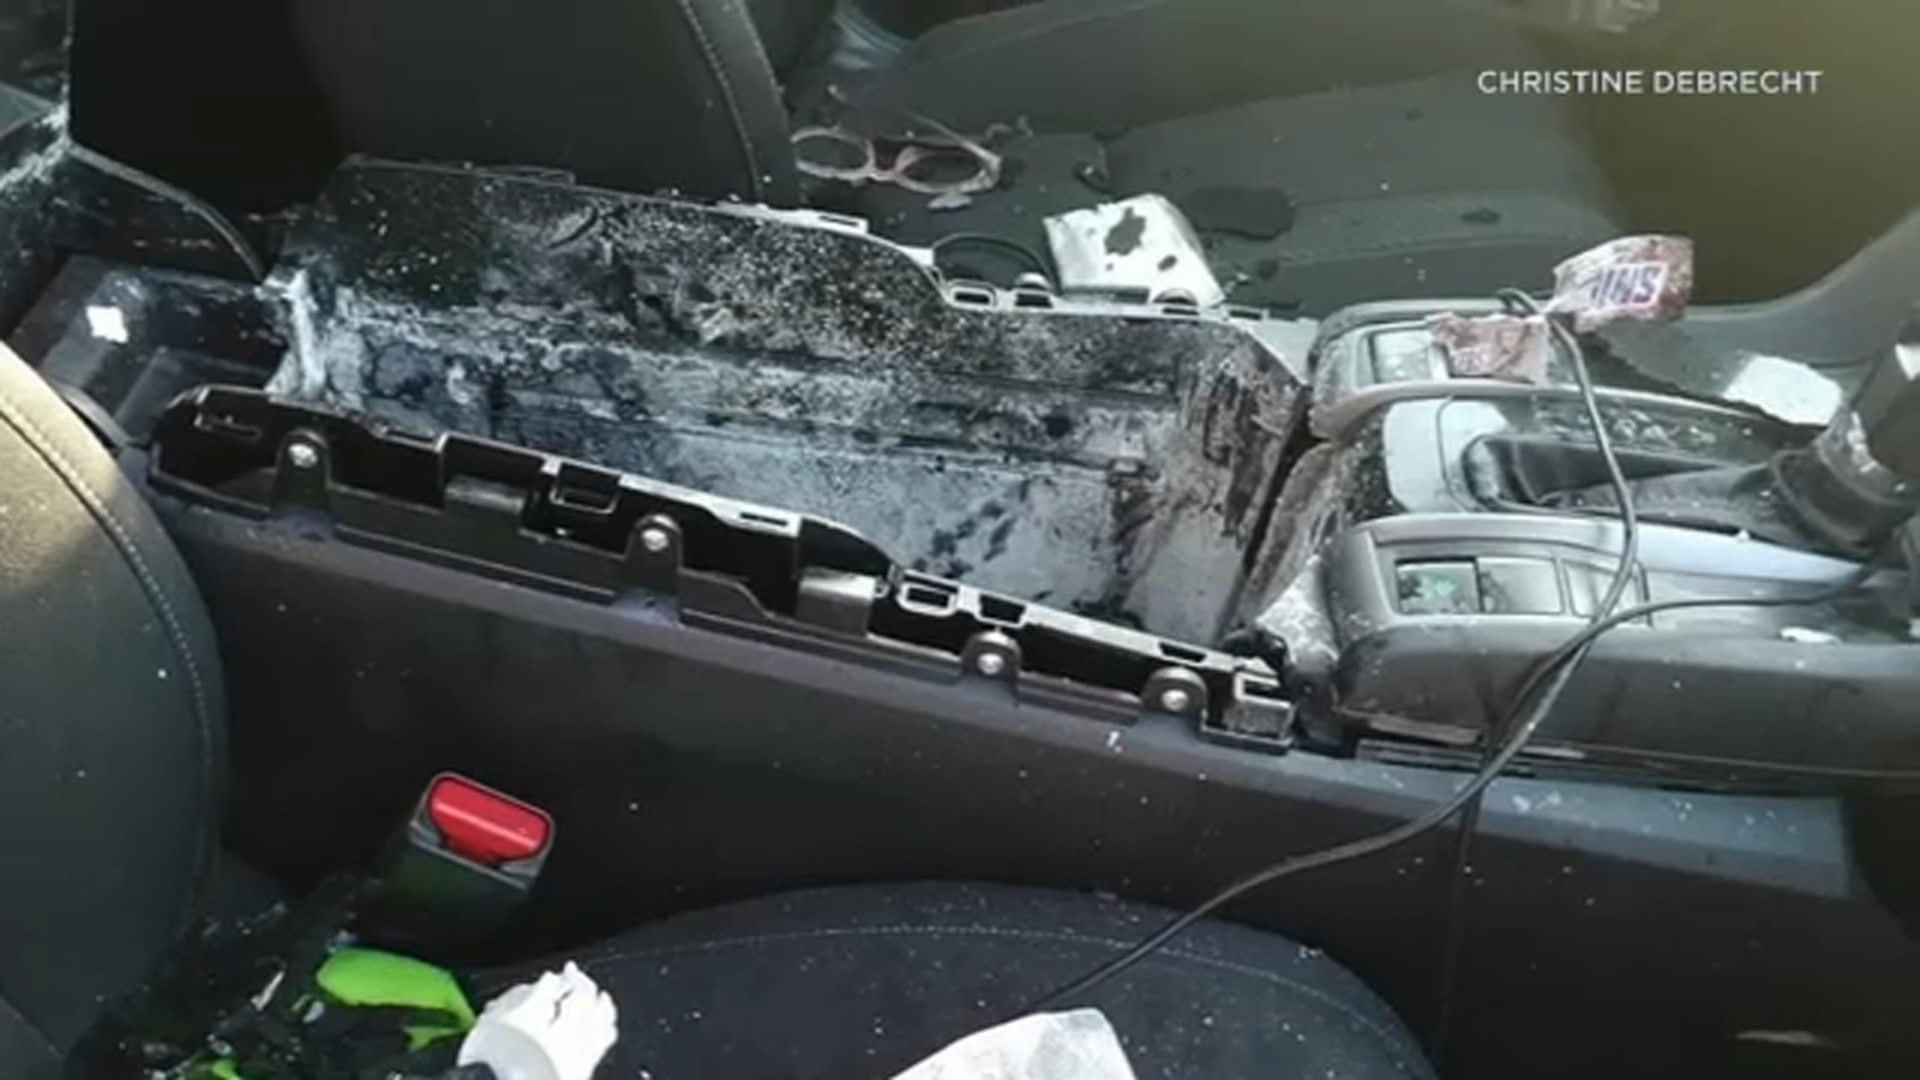 Dry shampoo can explodes, shatters car's sunroof in Missouri